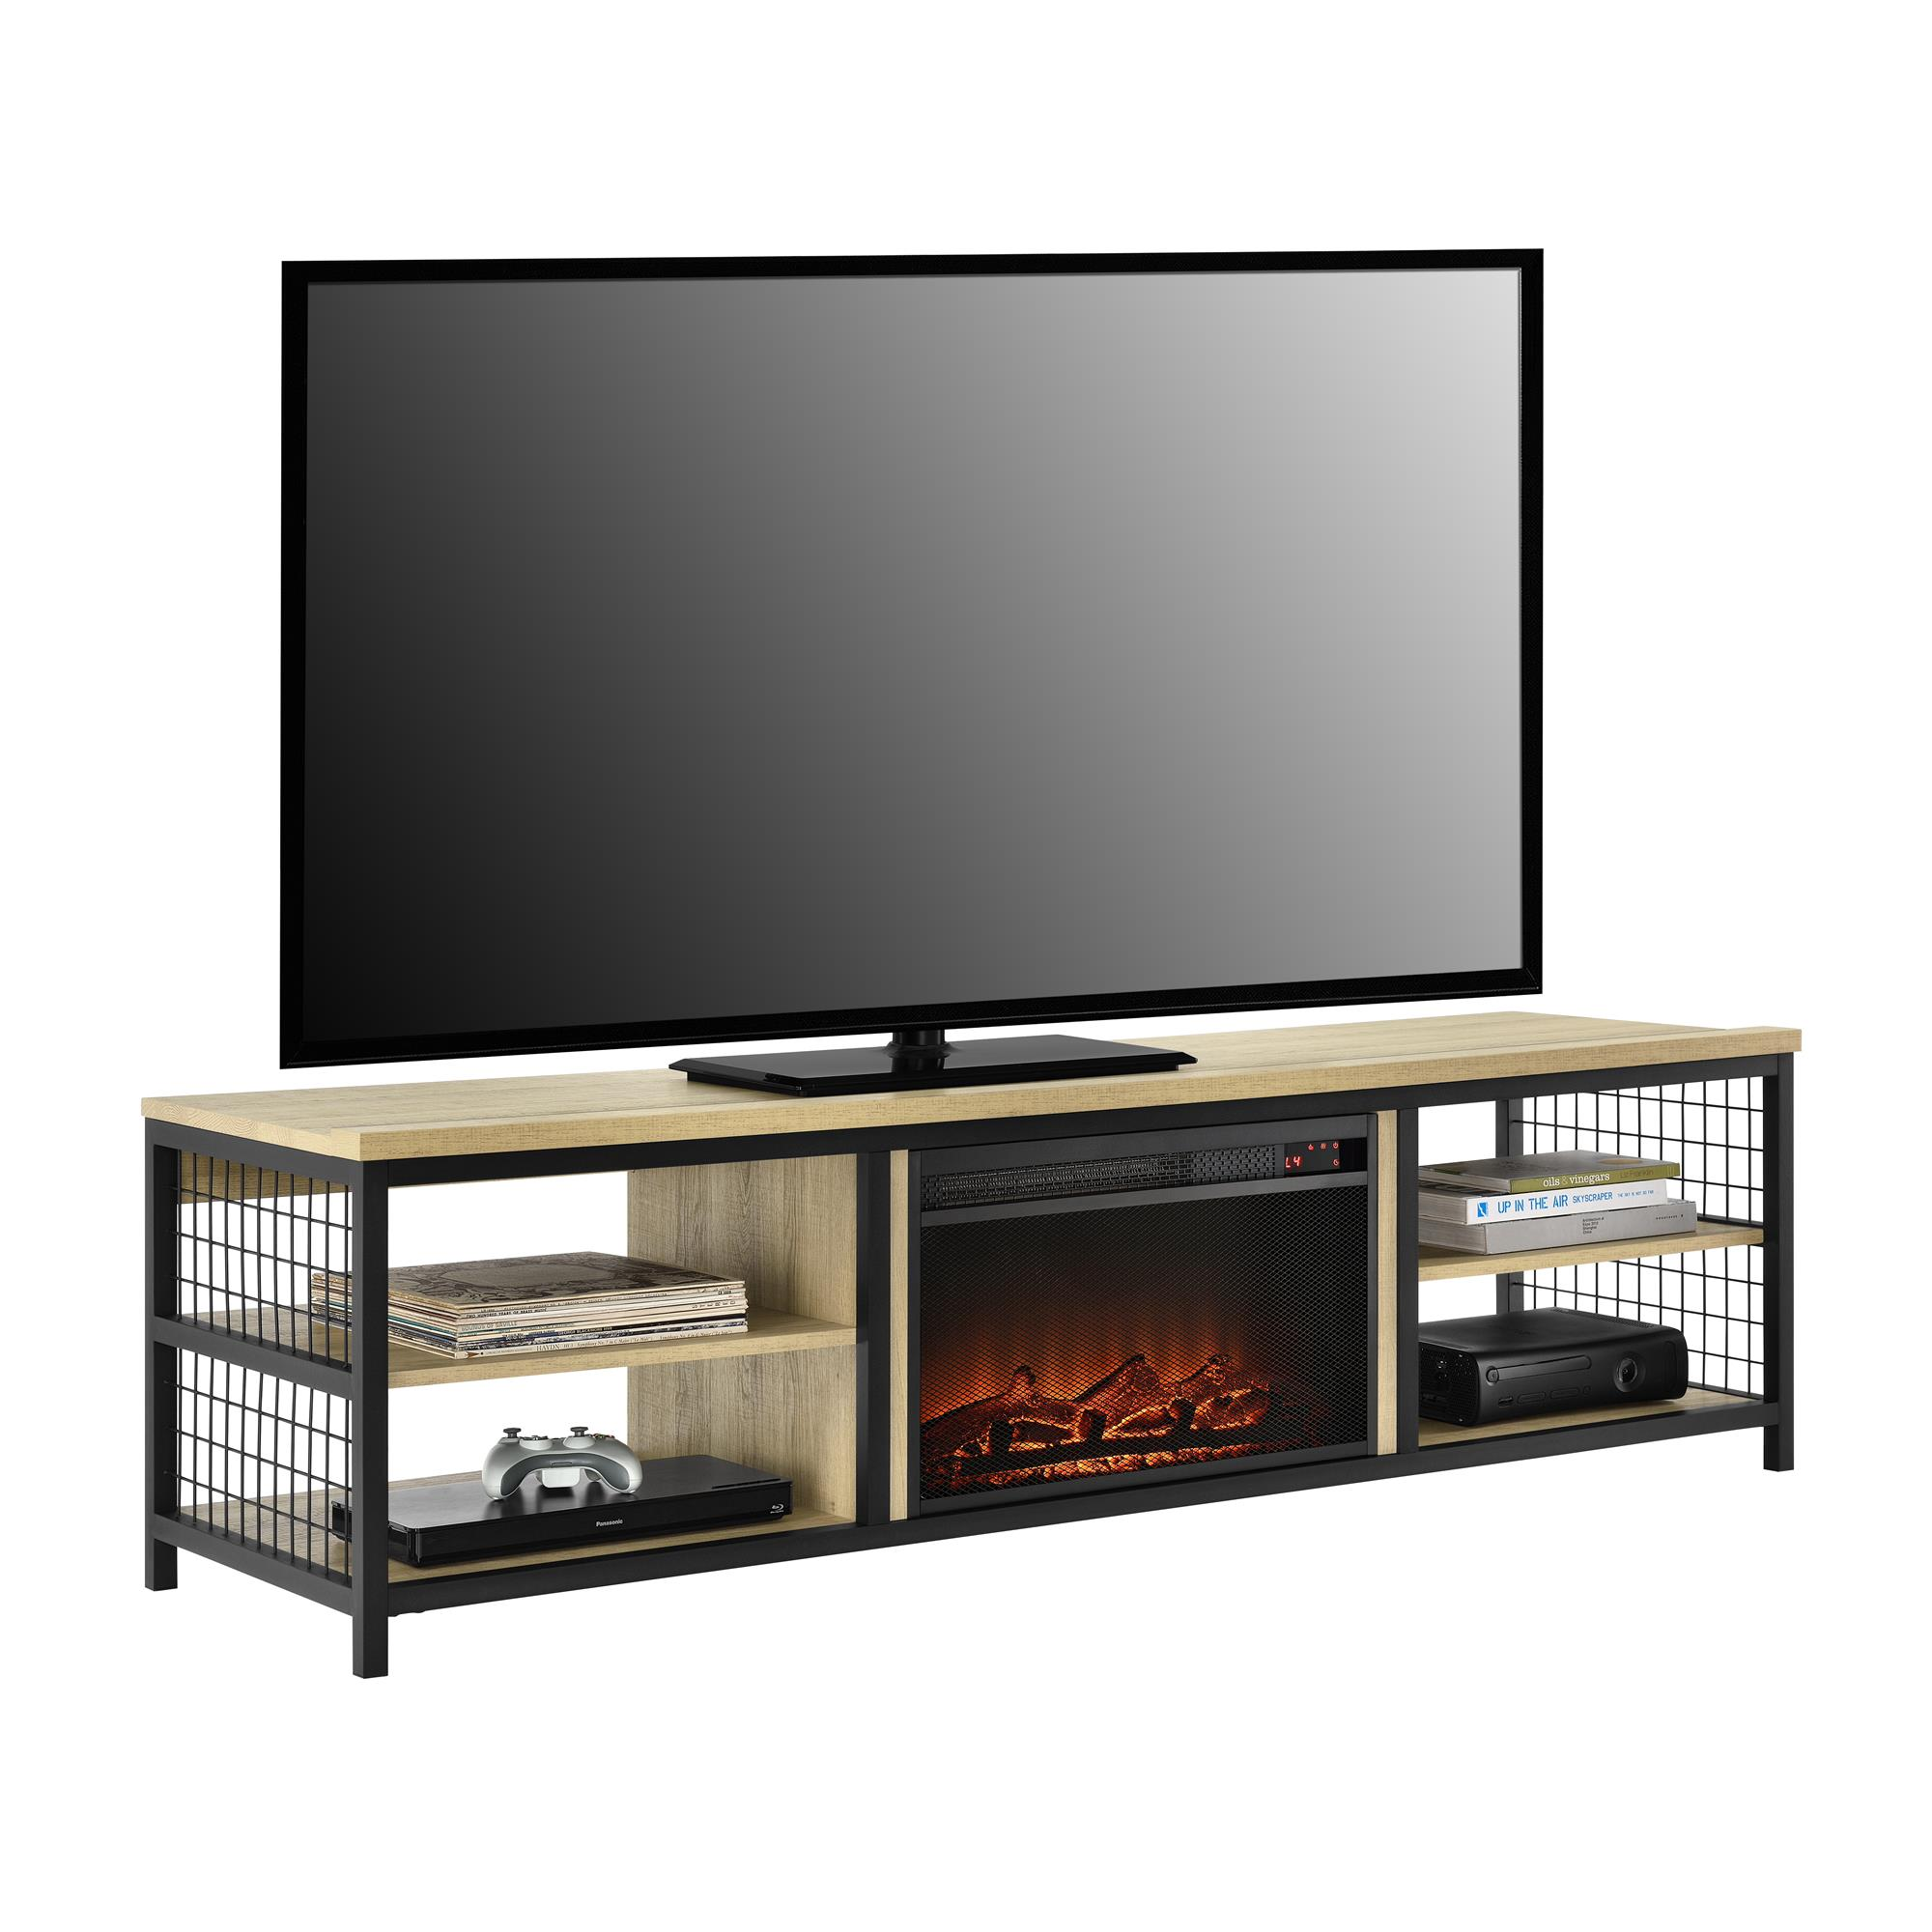 """Ameriwood Home Broadview TV Stand with Fireplace for TVs up to 75"""", Golden Oak"""